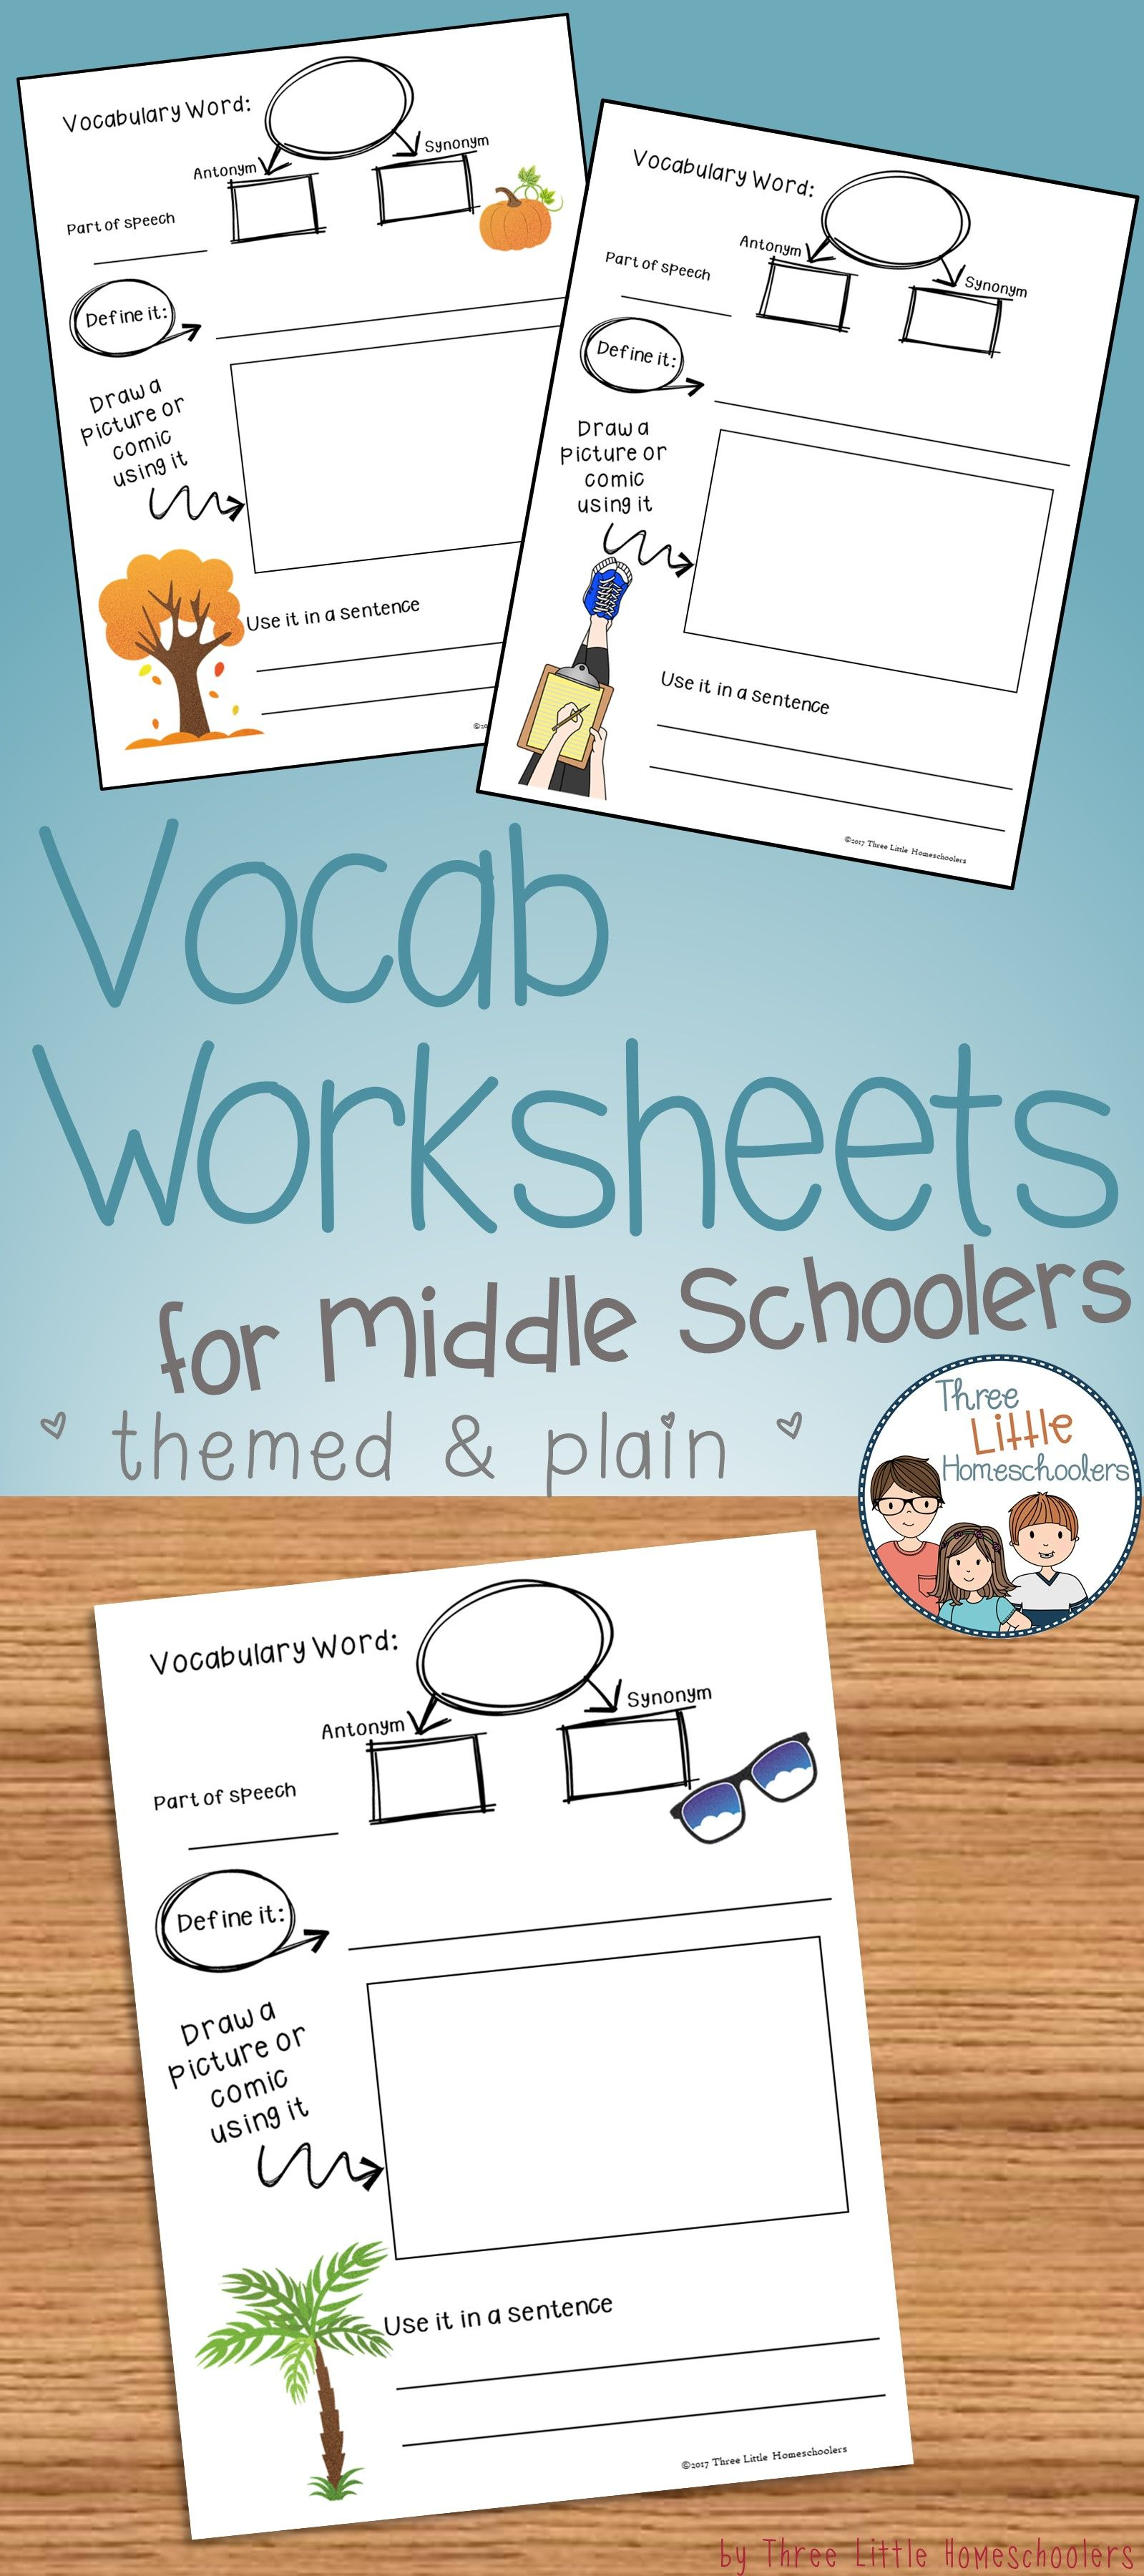 Middle School Vocabulary Worksheet With Plain And Themed